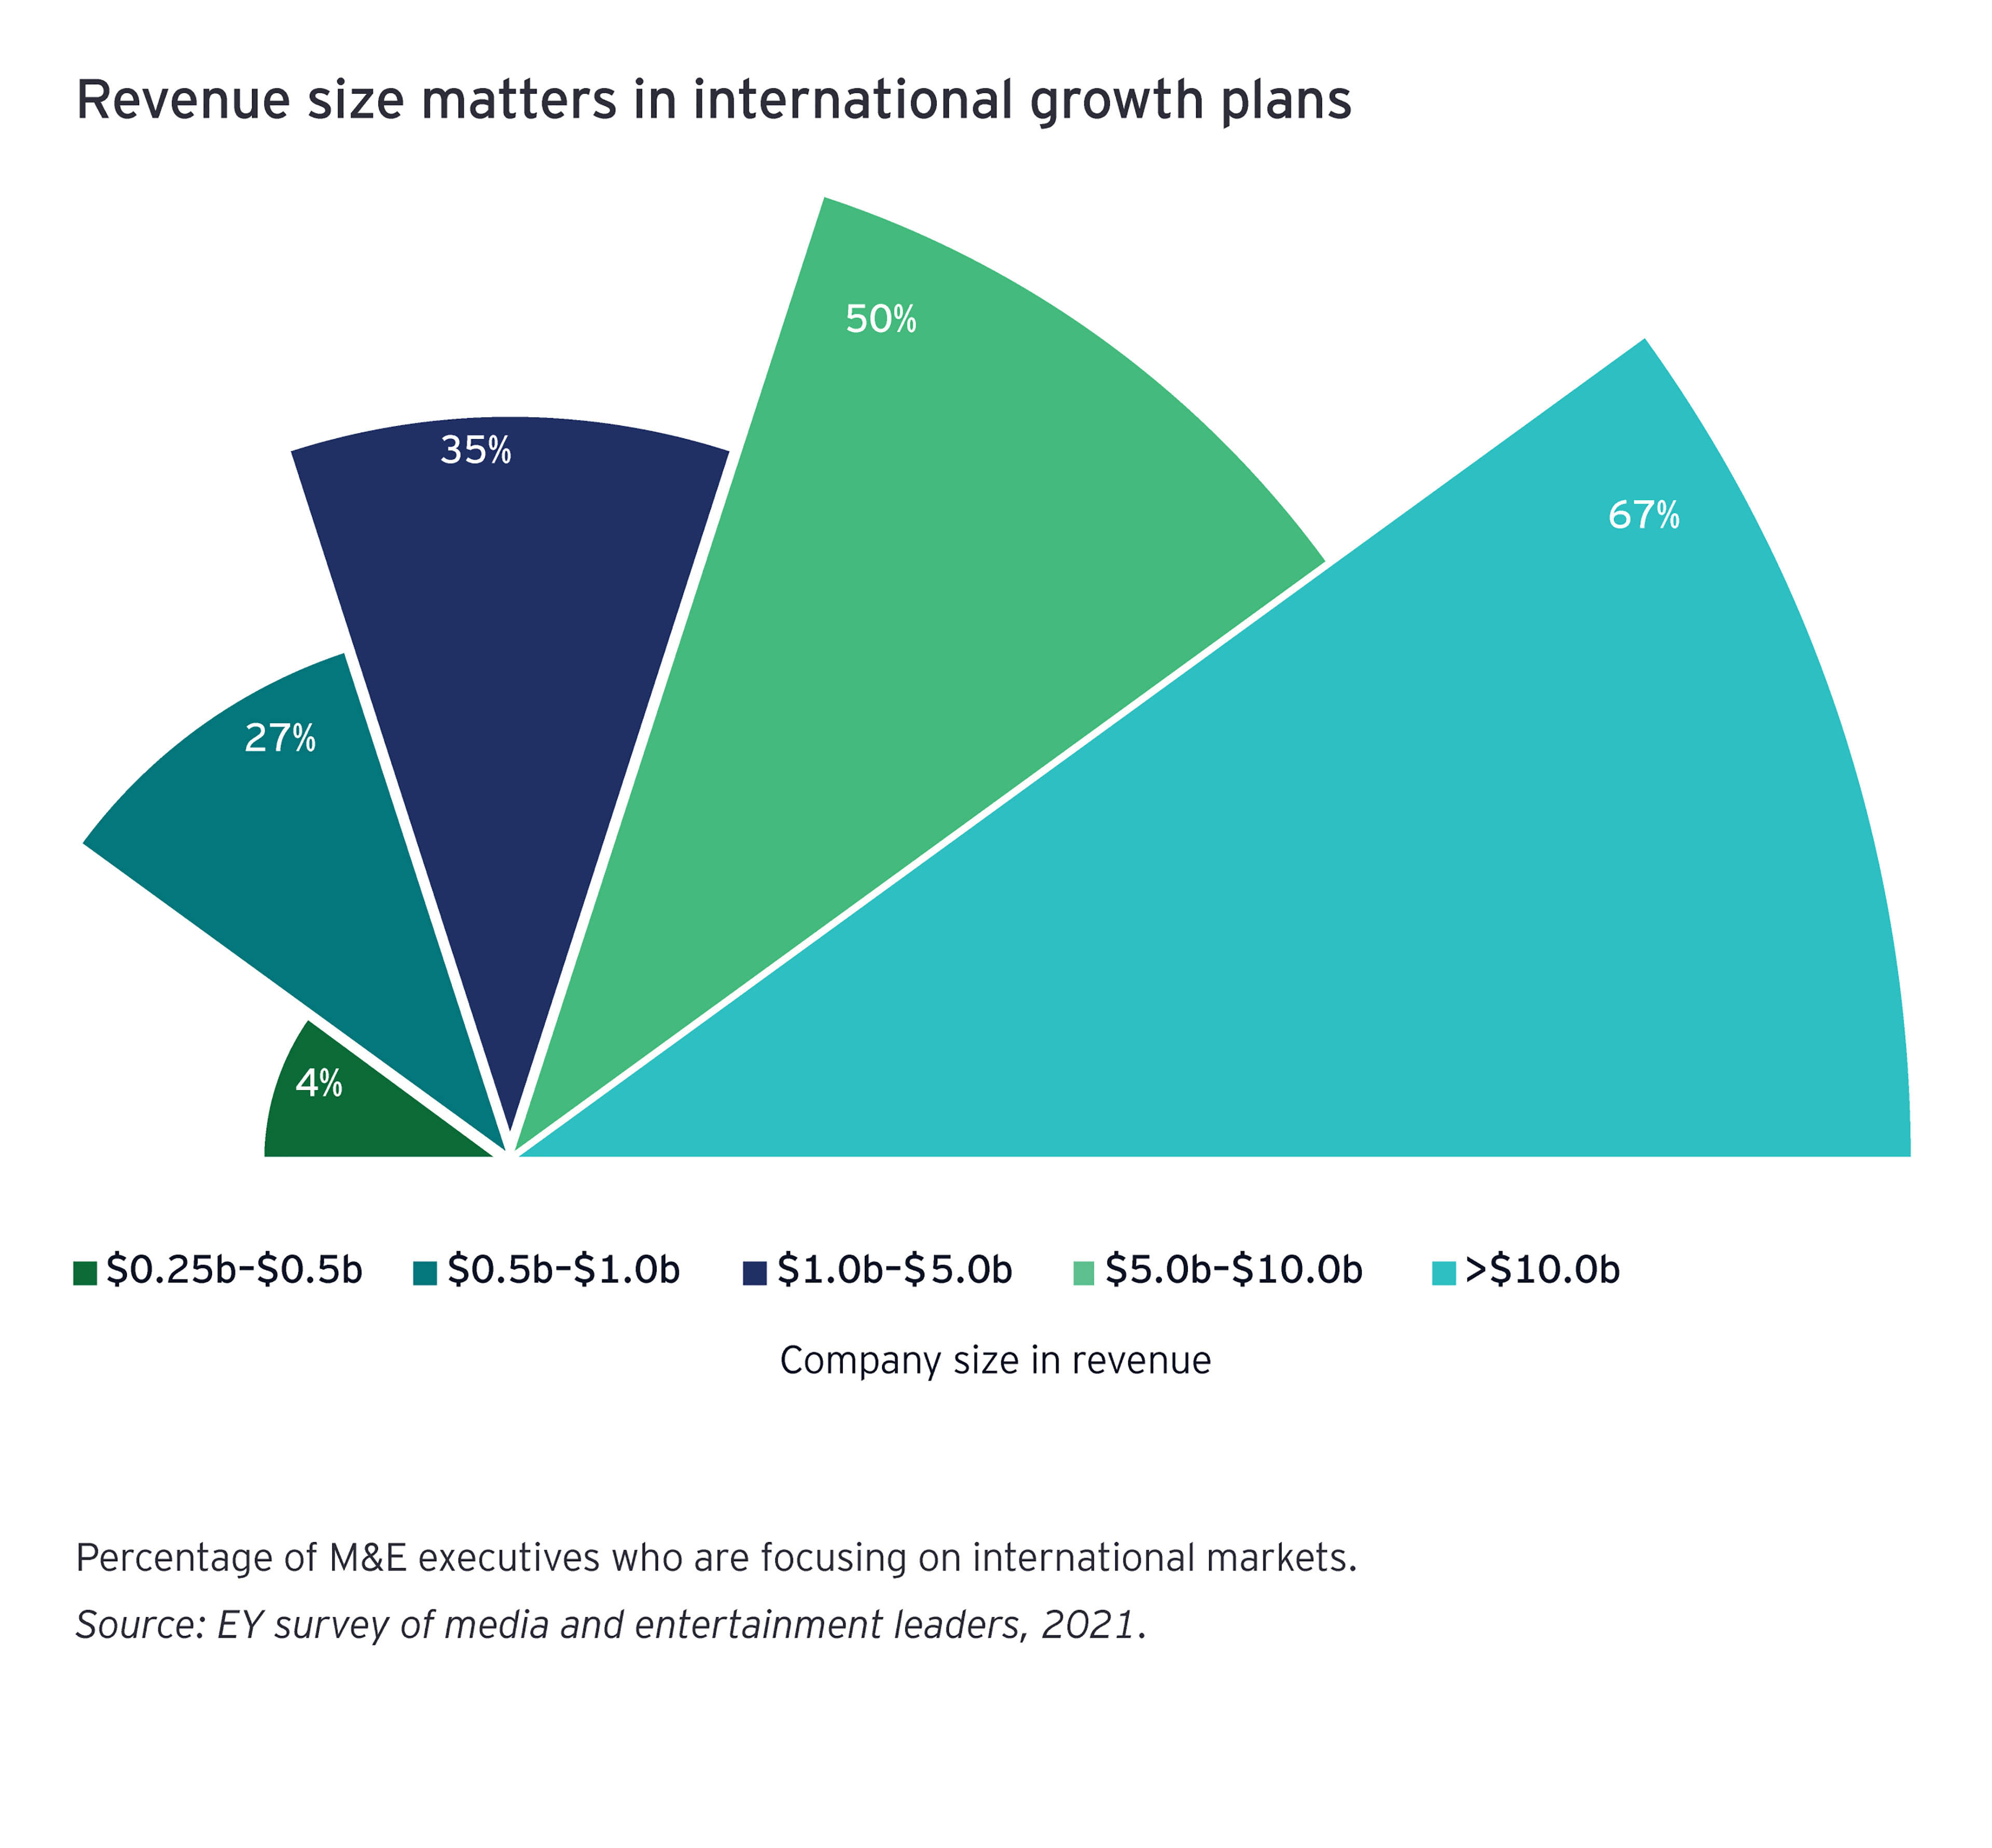 EY - Chart of revenue size matters